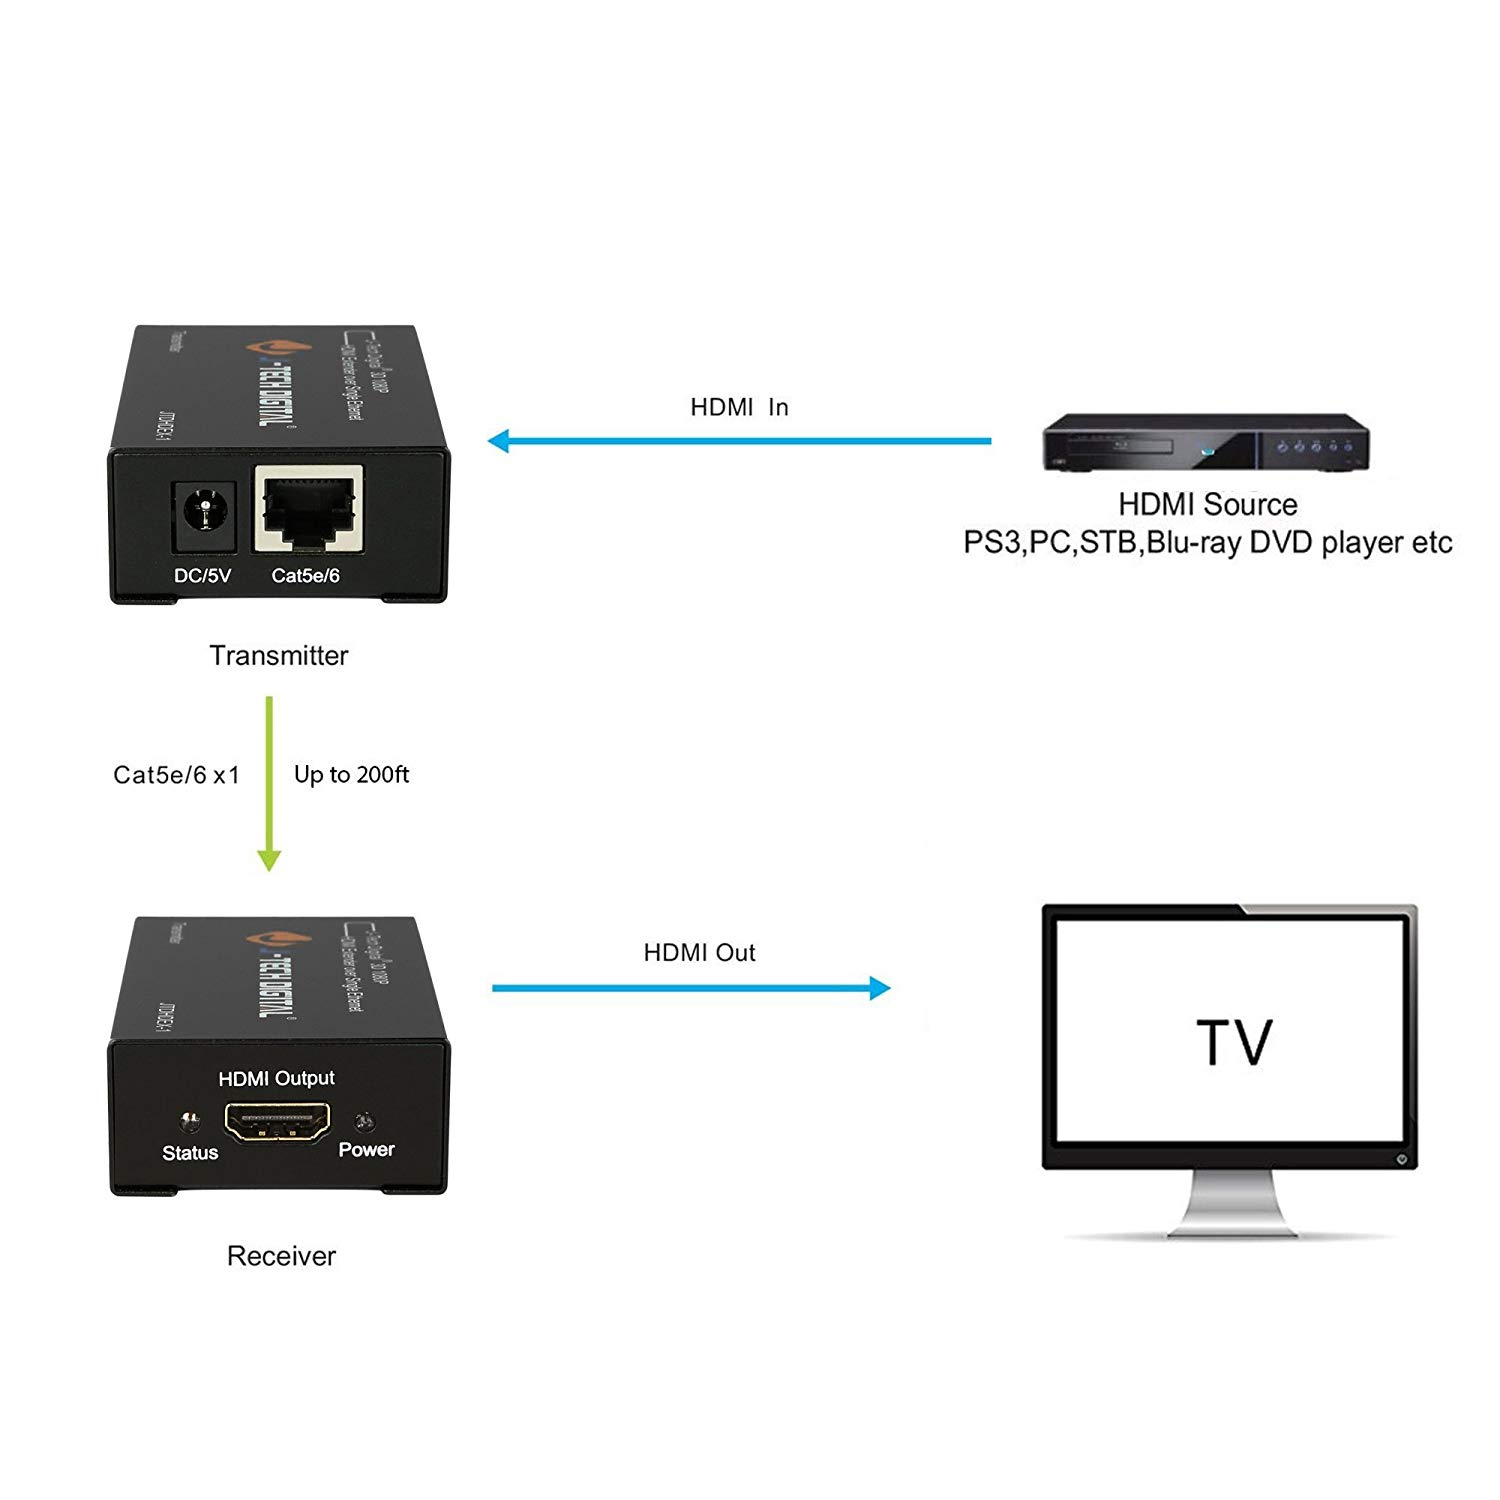 Hdmi Extender Block Diagram